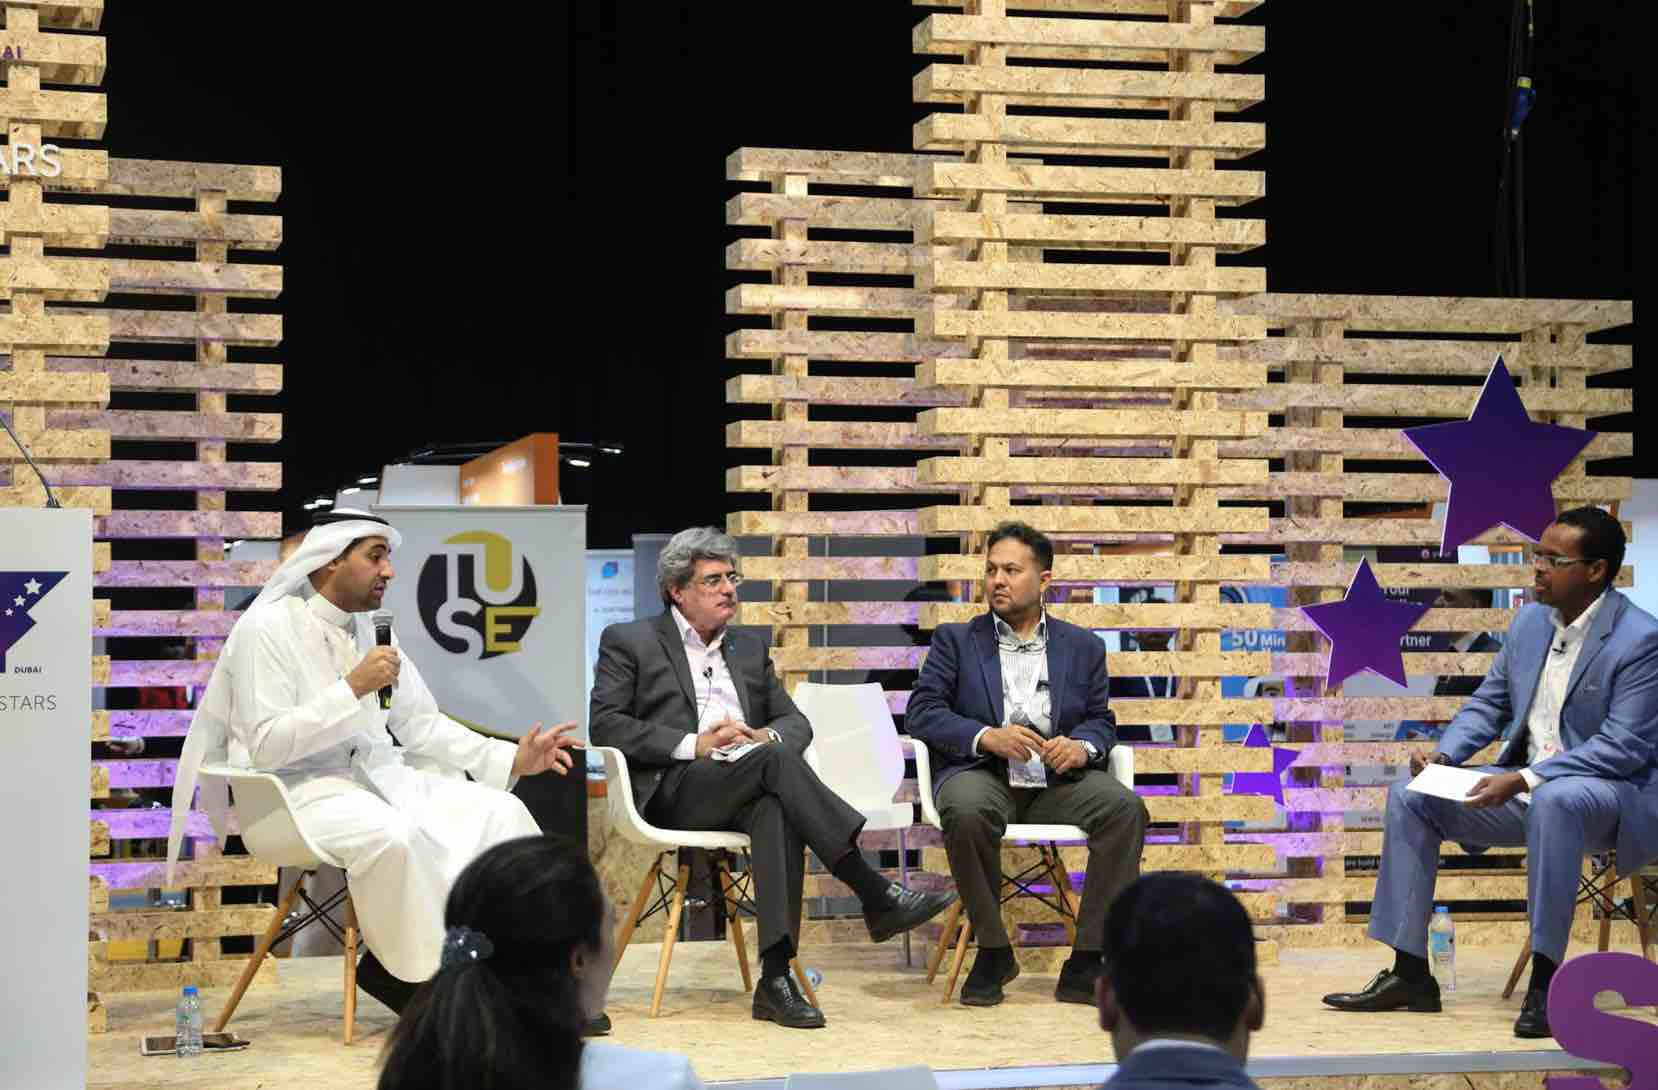 Highlights of Day 2 of GITEX Technology Week 2017